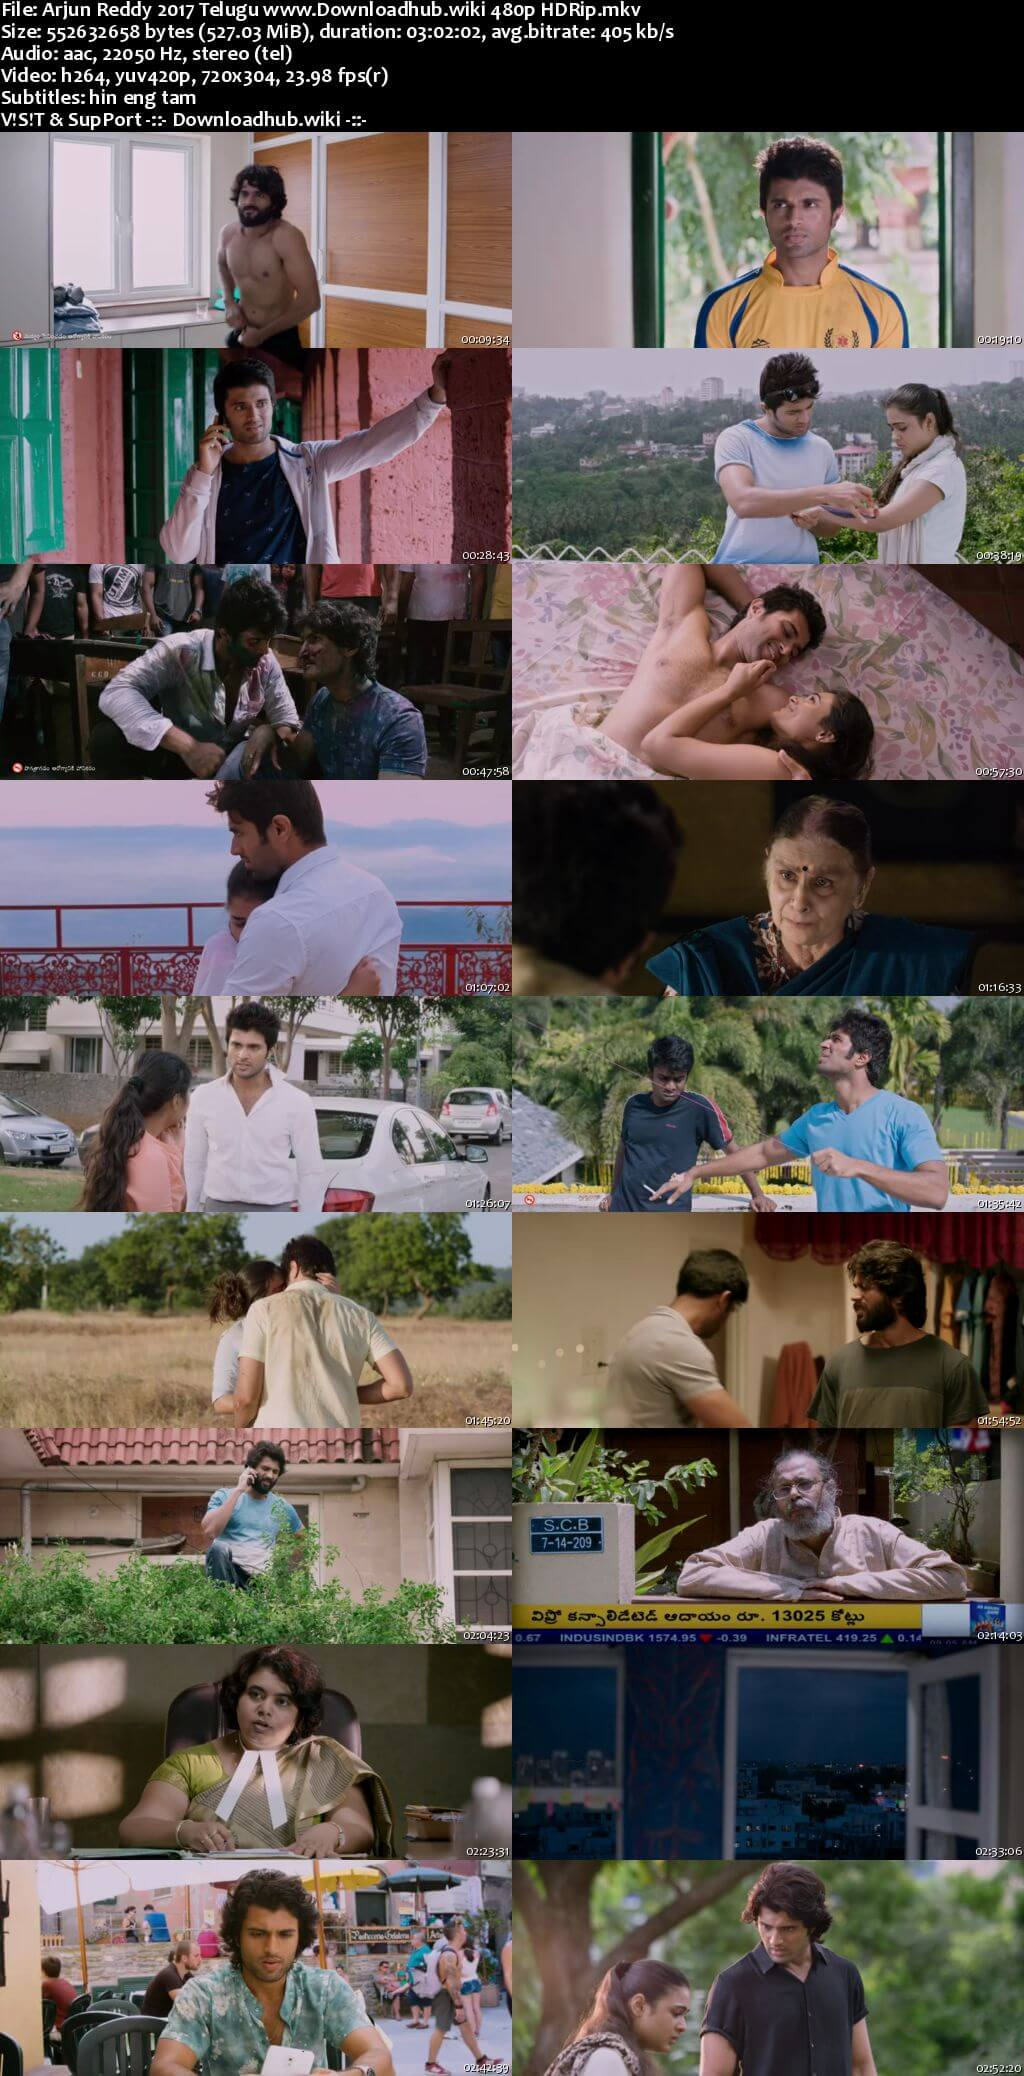 Arjun Reddy 2017 Telugu 500MB HDRip 480p MSubs